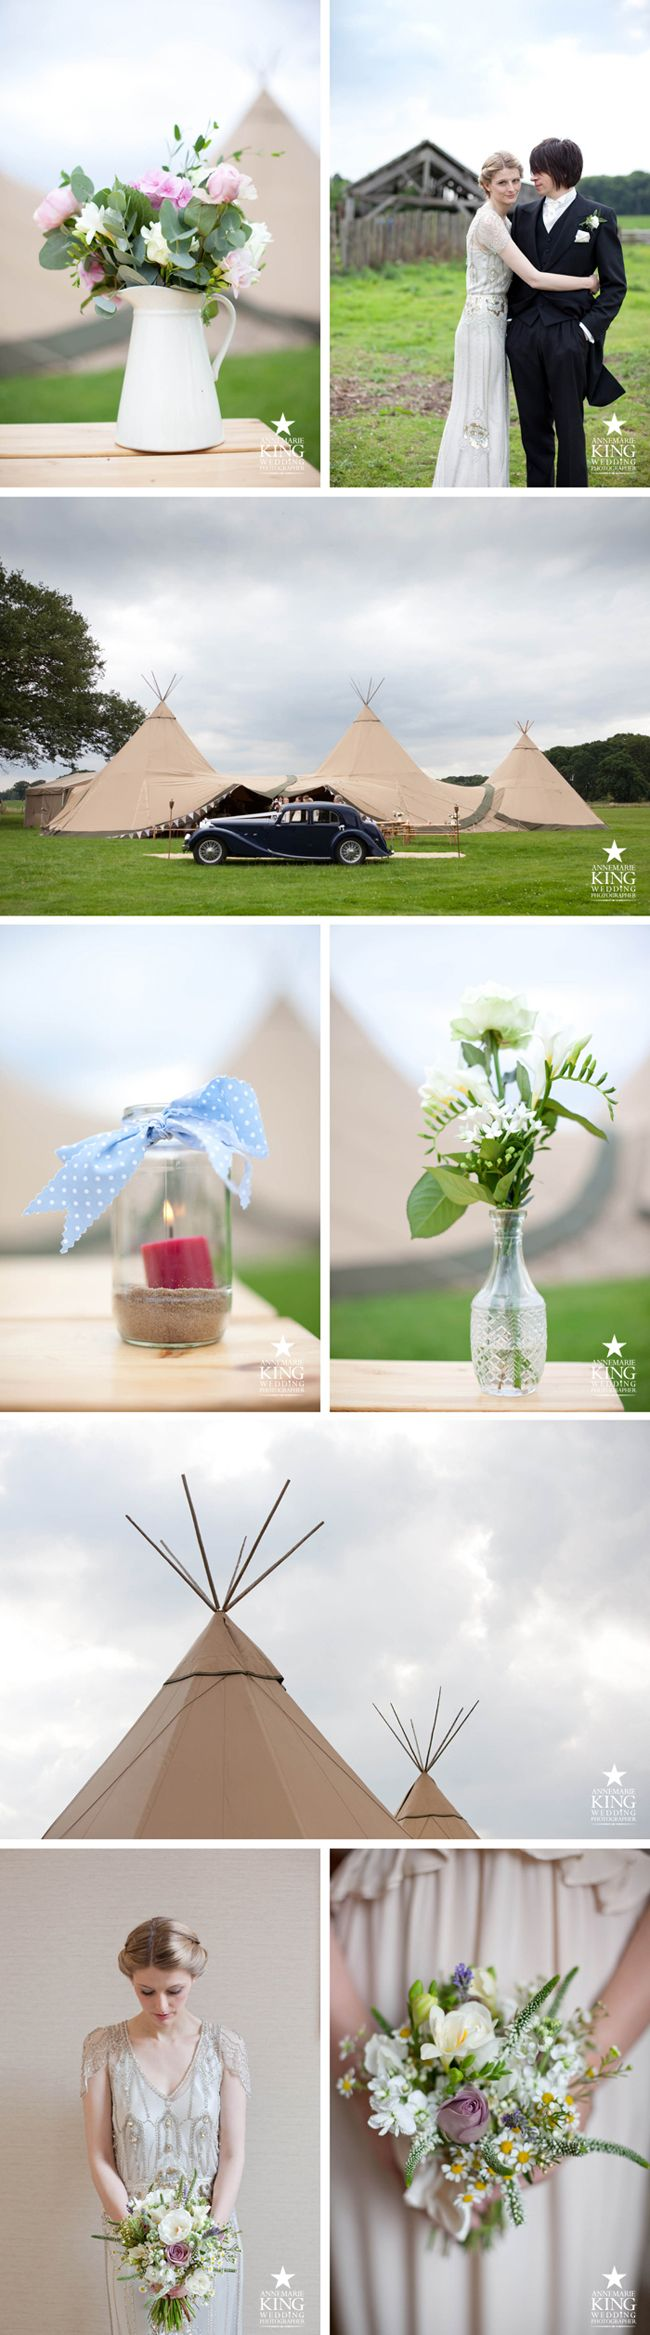 country wedding in teepee. Photography by Annemarie King